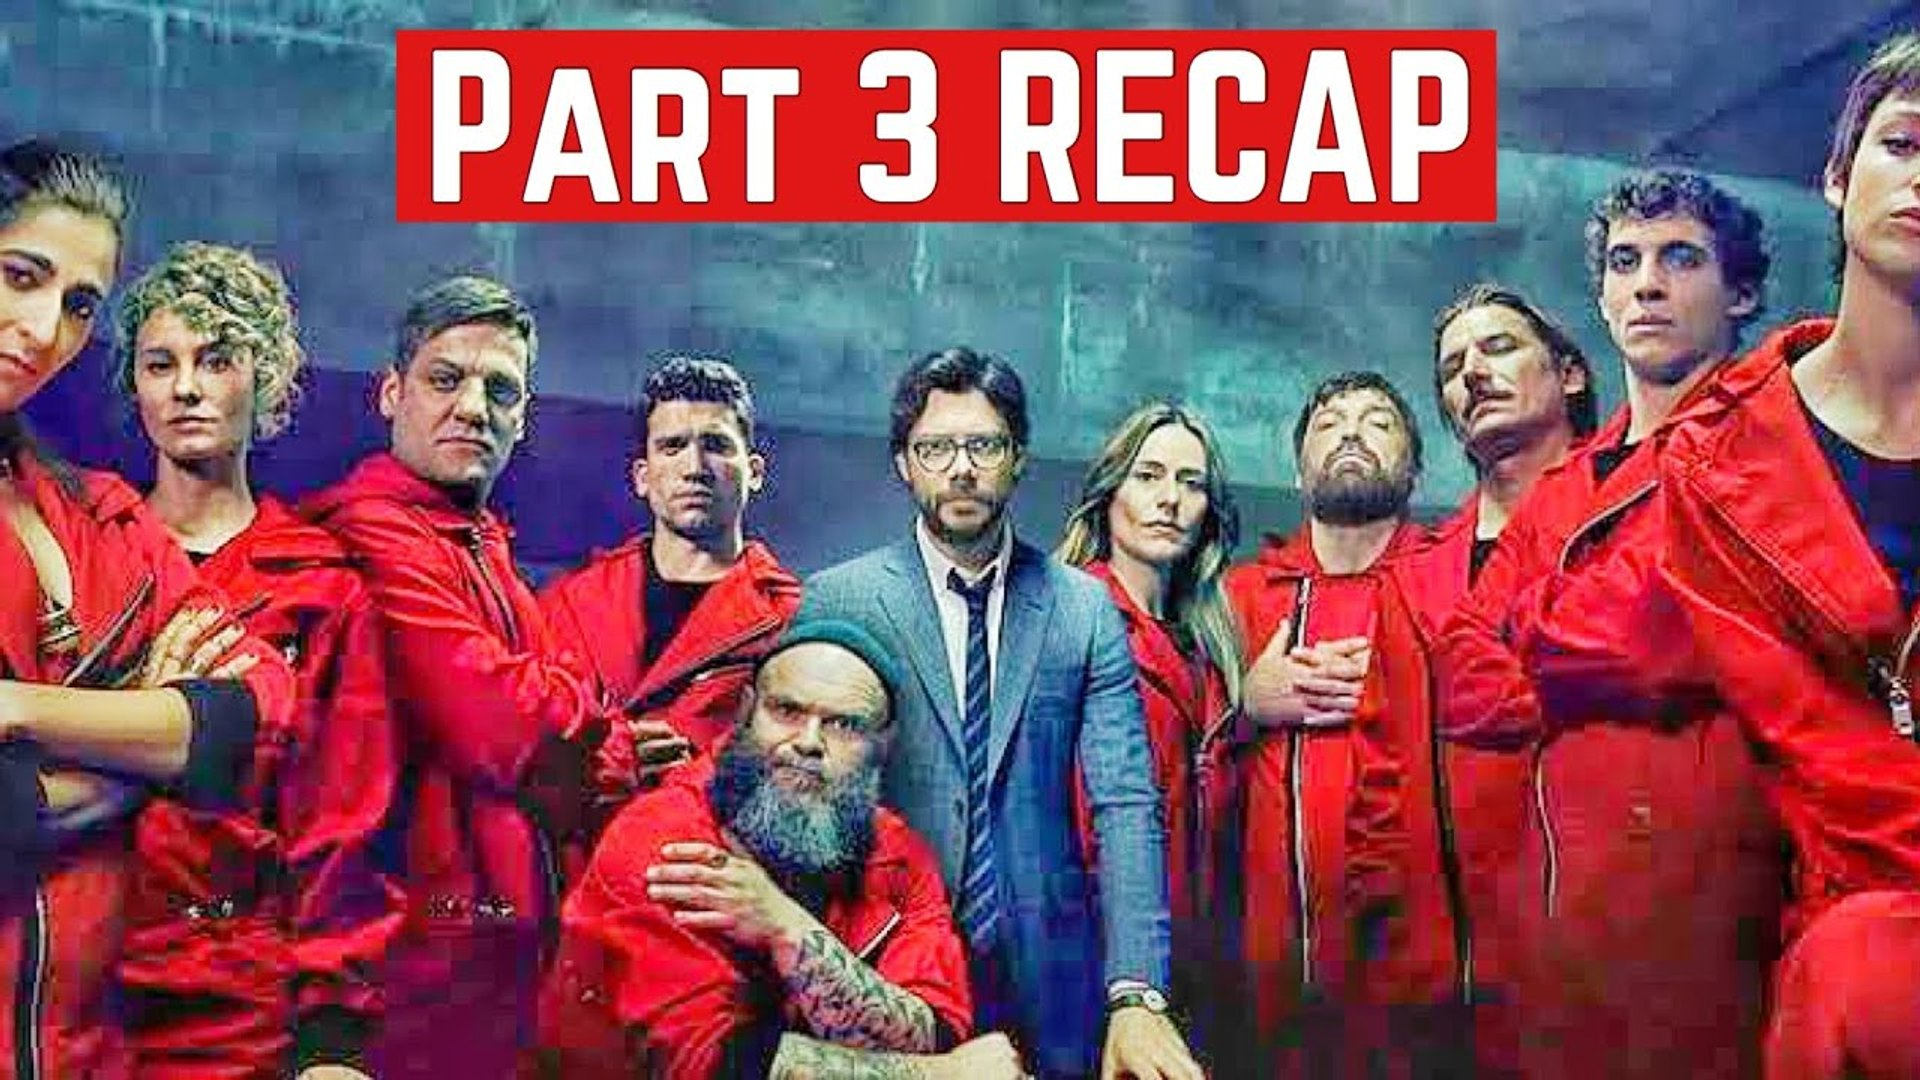 Money Heist : Part 3 REACP English - La Casa De Papel - Netflix 2020